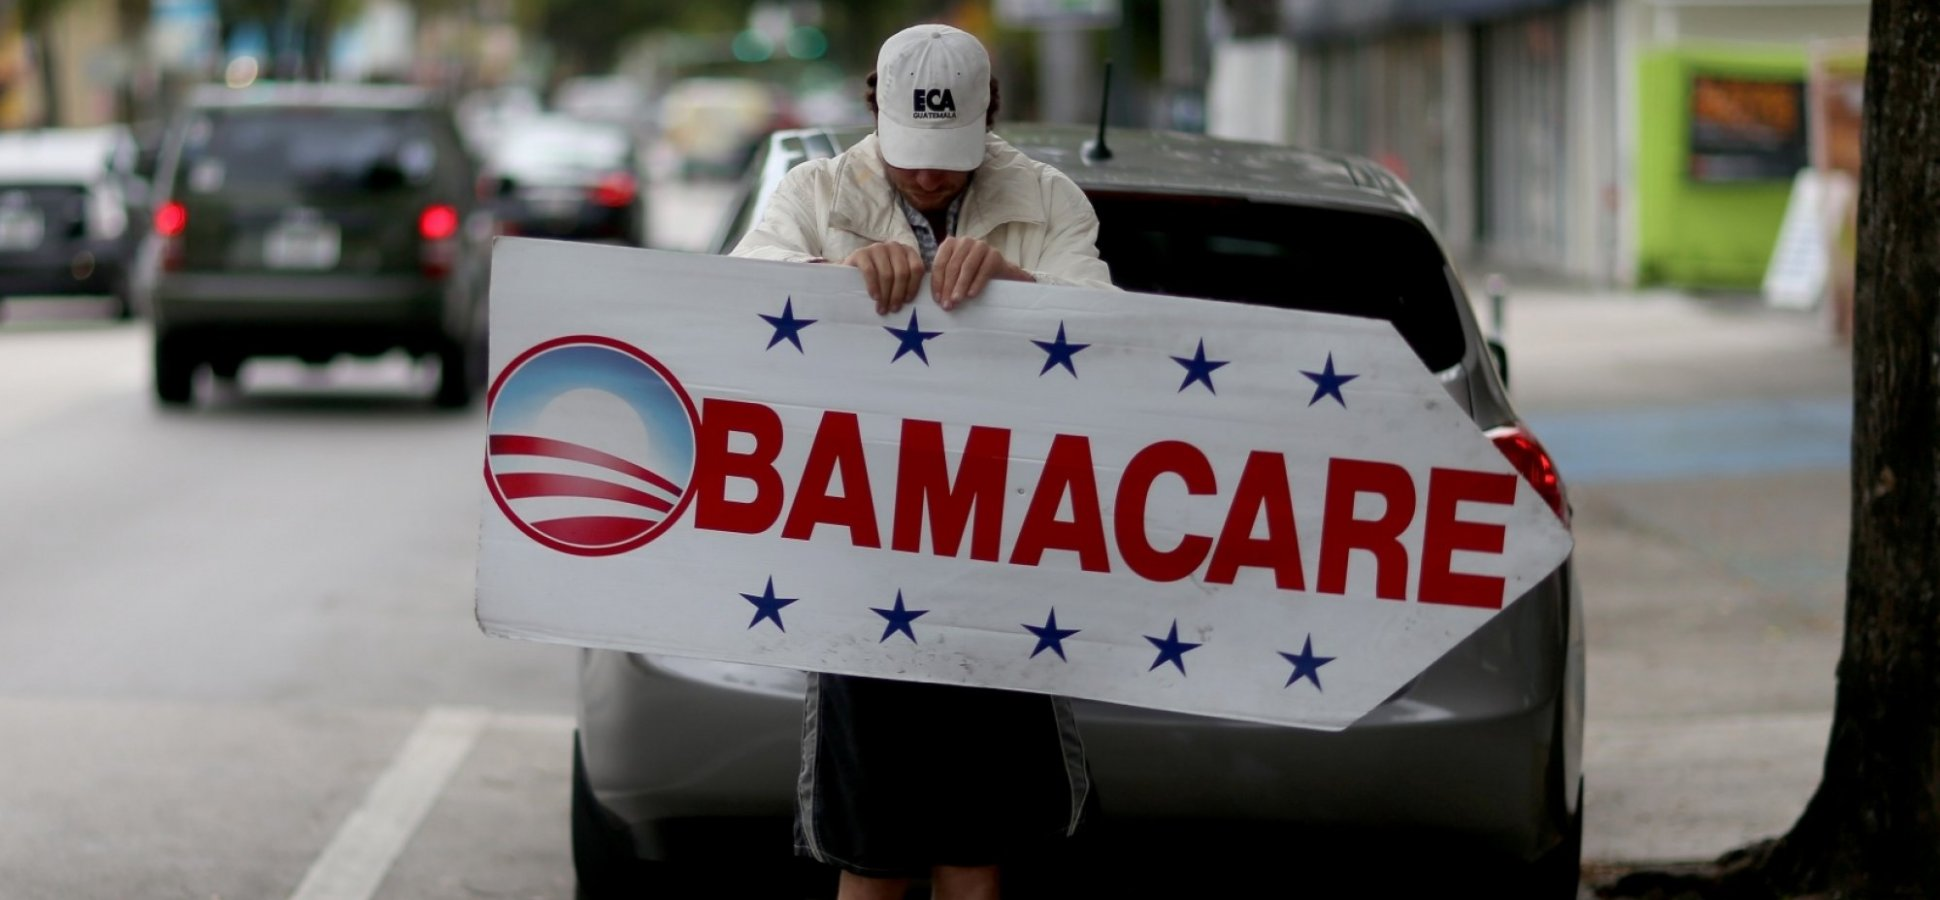 Obamacare Is Unconstitutional, a Federal Judge in Texas Rules. Here's What Happens Next